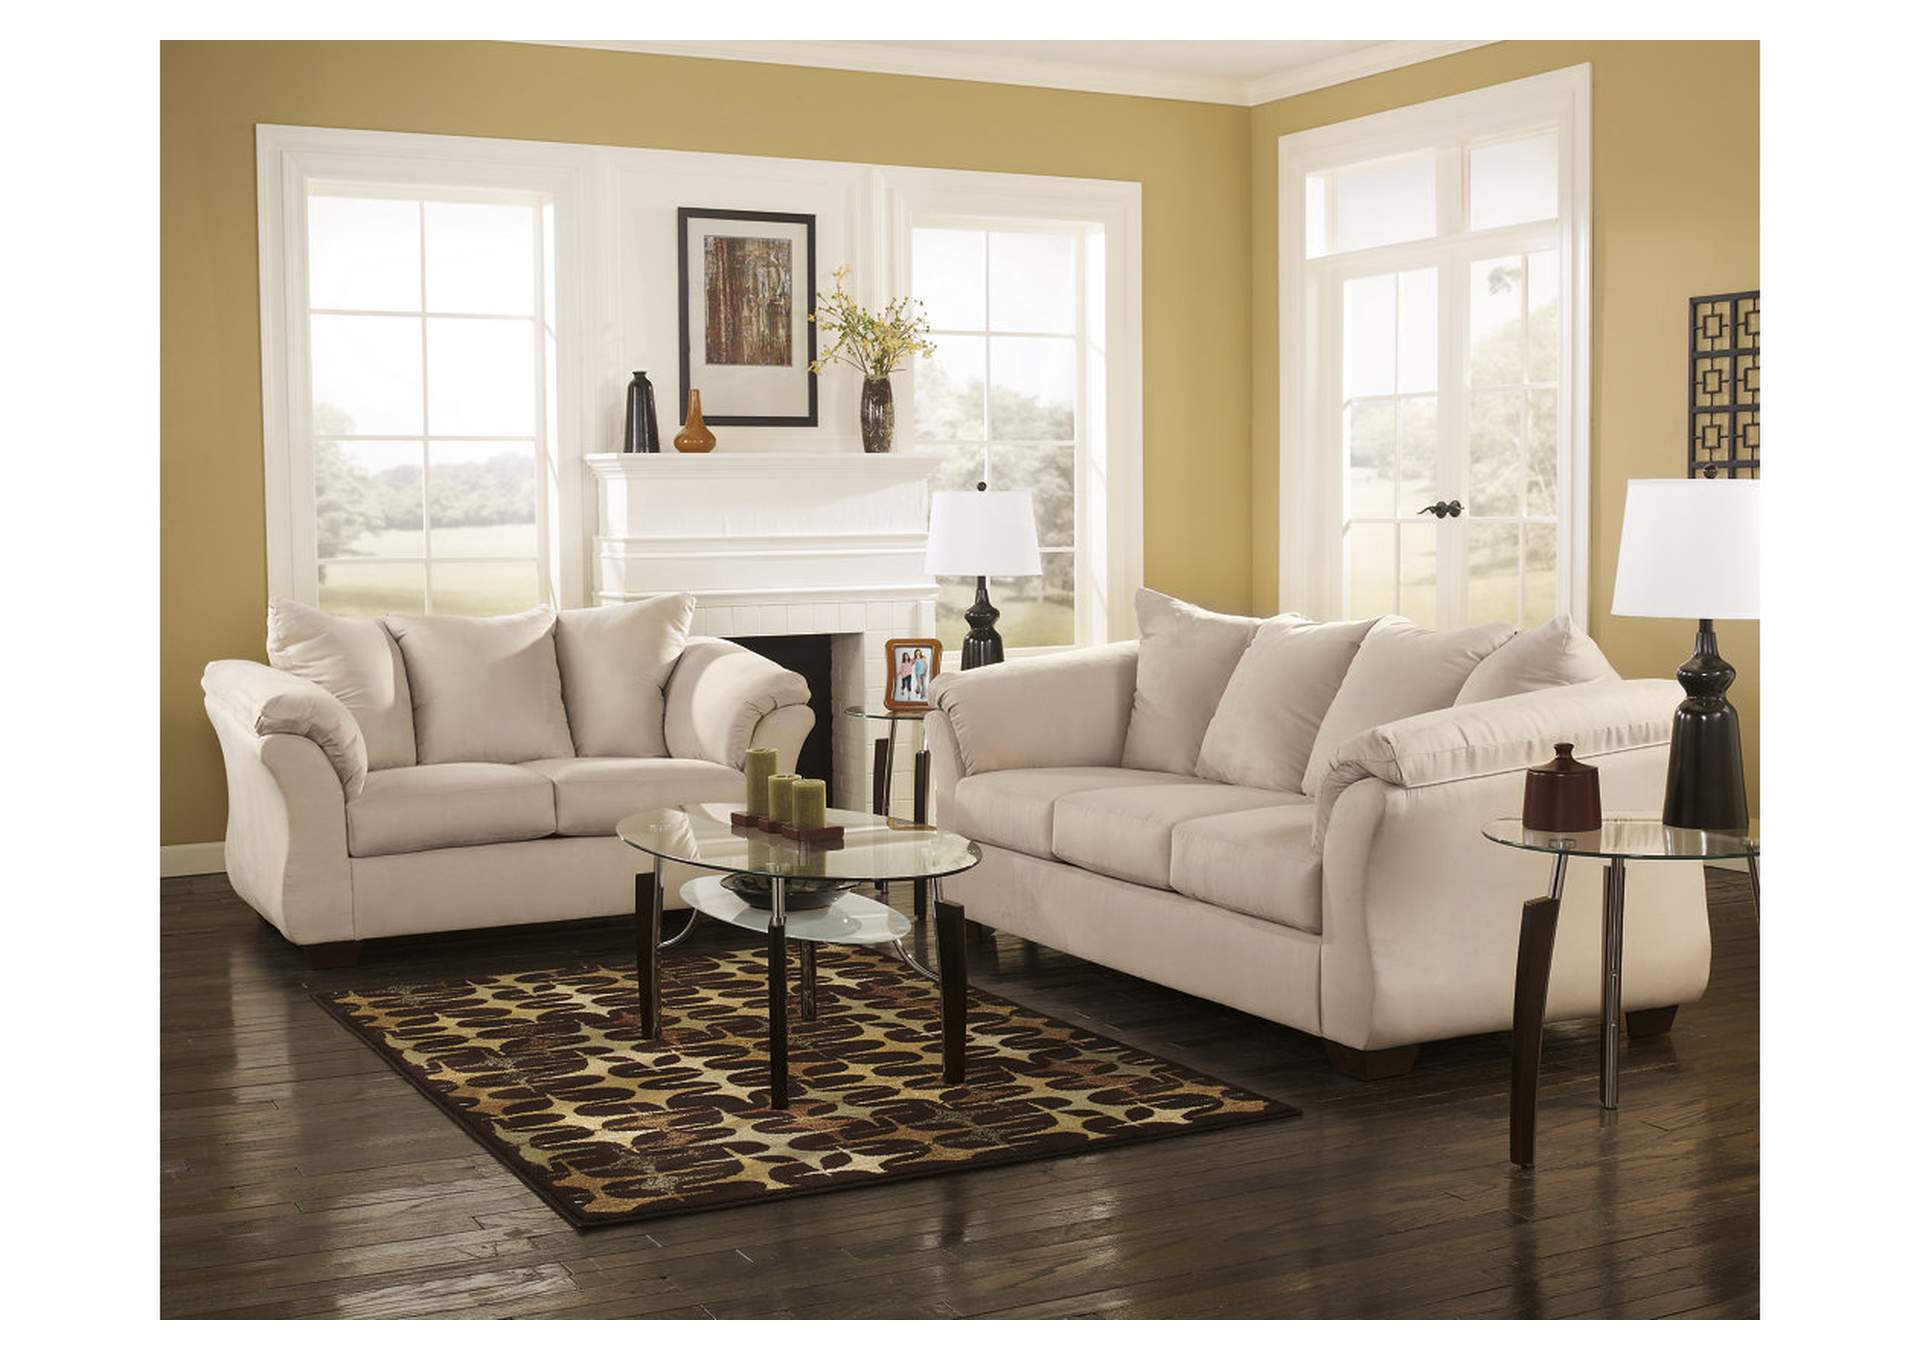 Superbe Darcy Stone Sofa U0026 Loveseat,Signature Design By Ashley